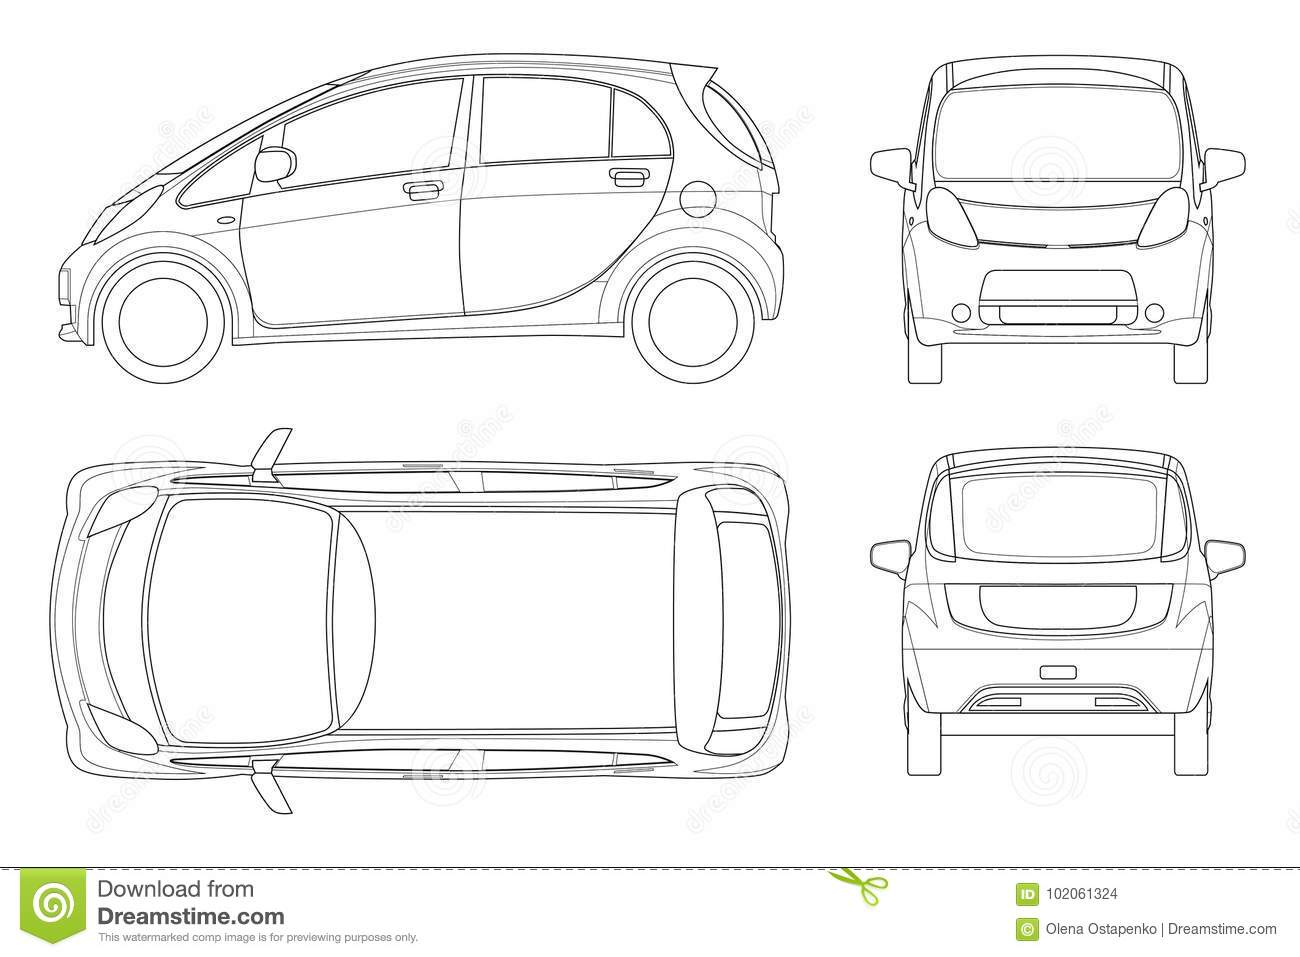 Electric vehicle or hybrid car in outline eco friendly hi tech auto download comp malvernweather Images